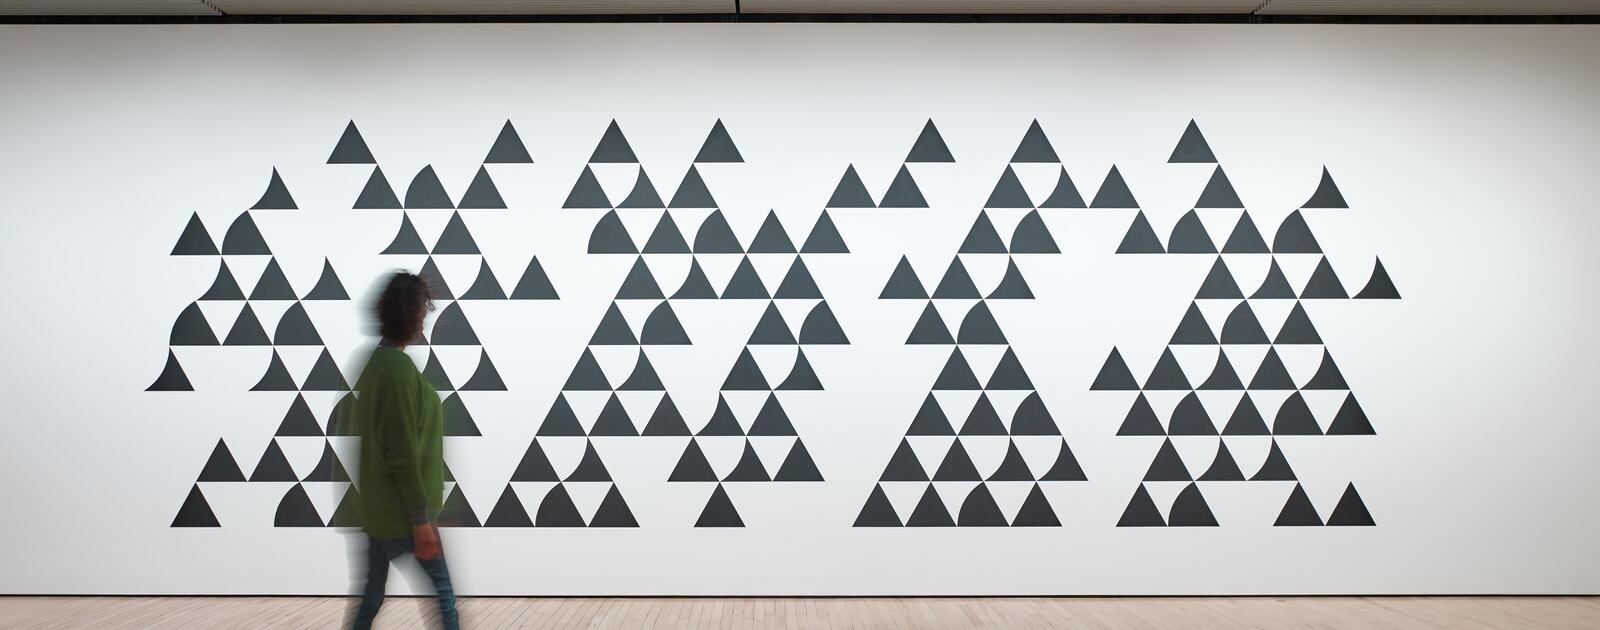 Installation view of Bridget Riley, Quiver 3, 2014 at Hayward Gallery 2019 © Bridget Riley 2019 Photo Stephen White & Co.